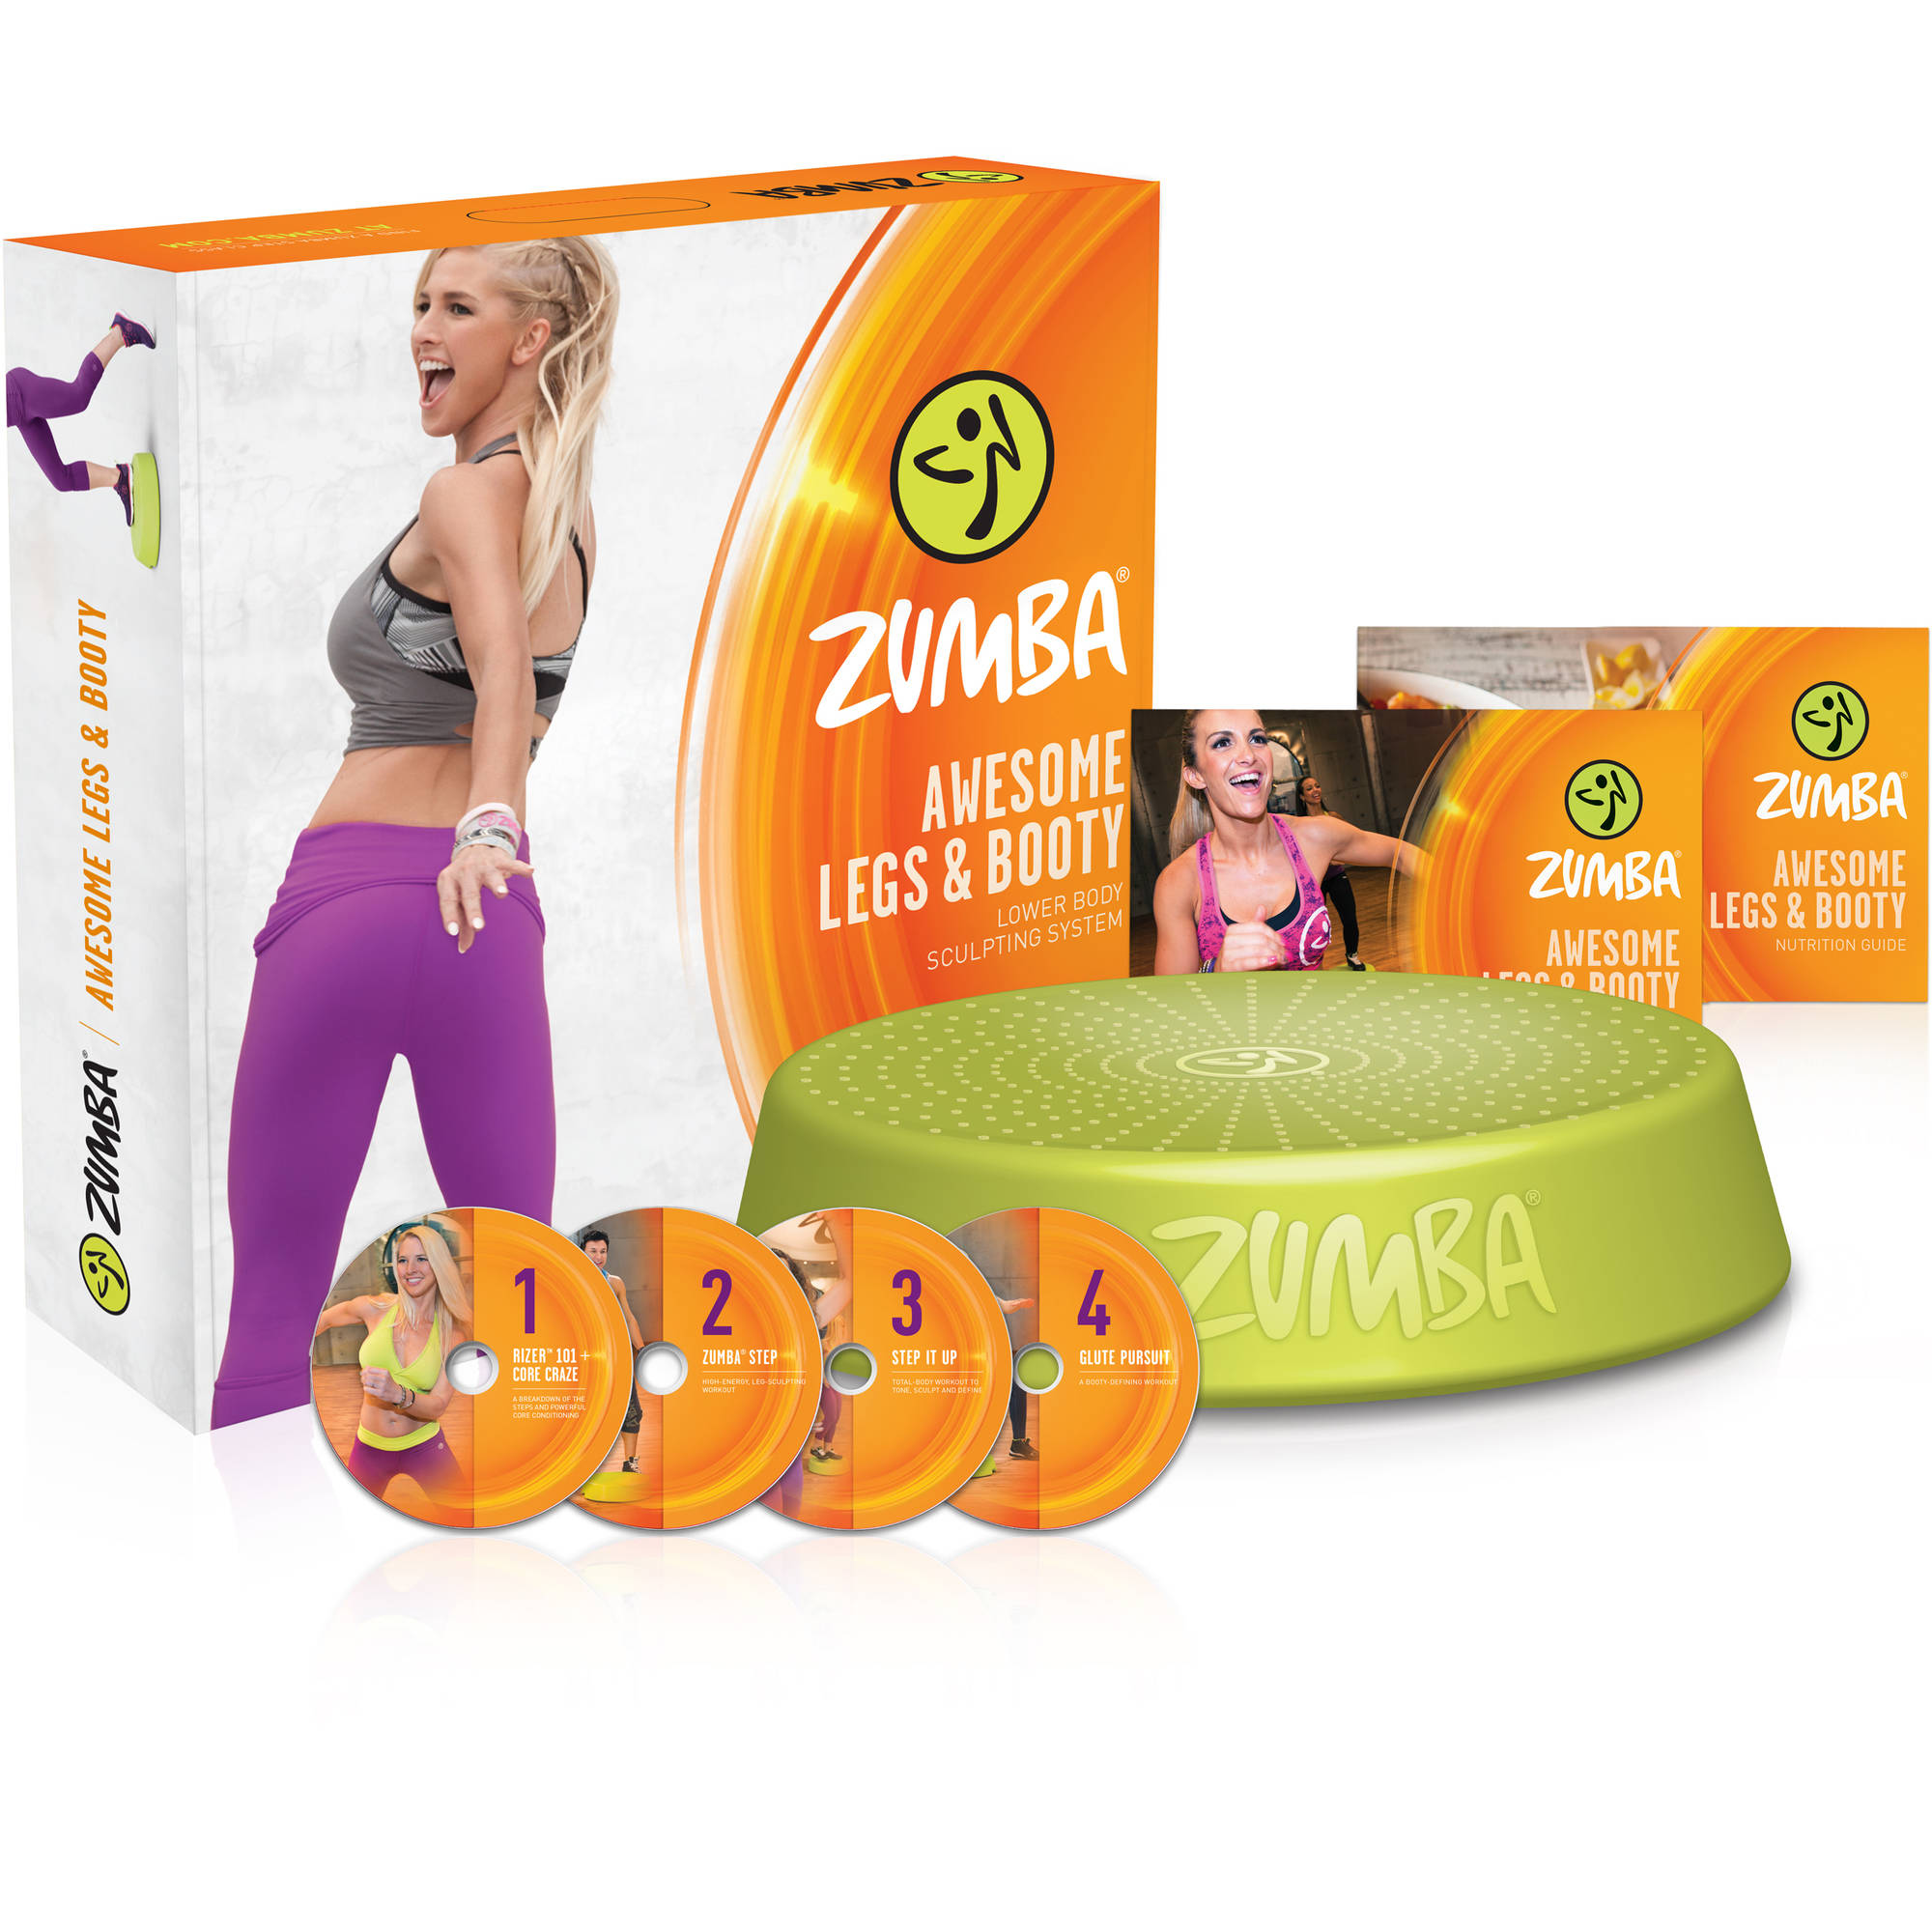 Zumba Awesome Legs and Booty DVD System by